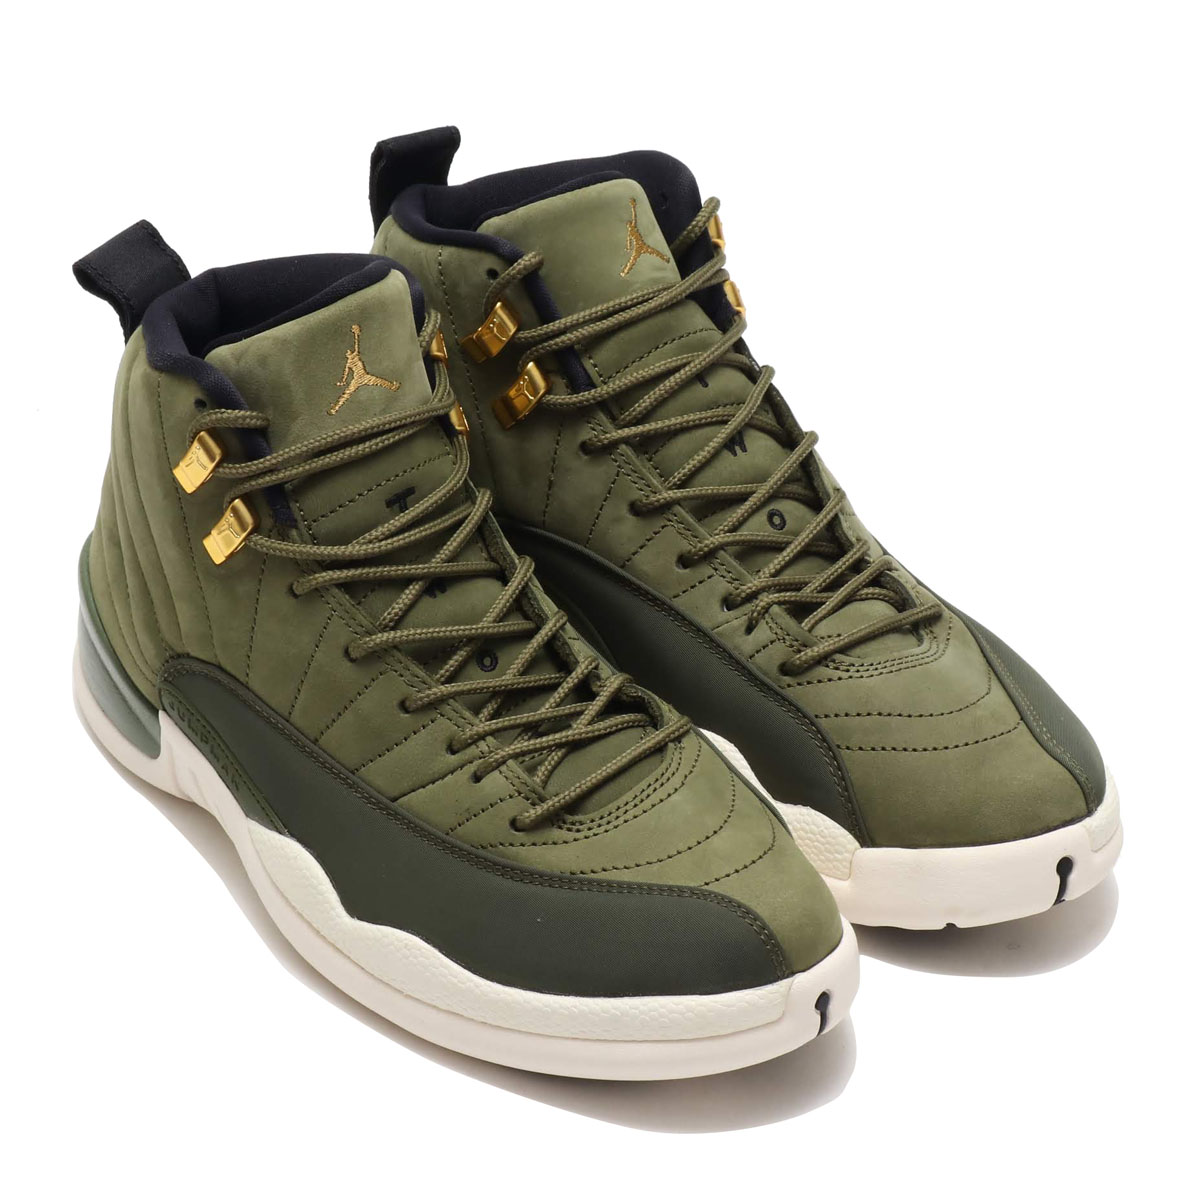 NIKE AIR JORDAN 12 RETRO(ナイキ エア ジョーダン 12 レトロ)(OLIVE CANVAS/METALLIC GOLD-BLACK-SAIL)18FA-S